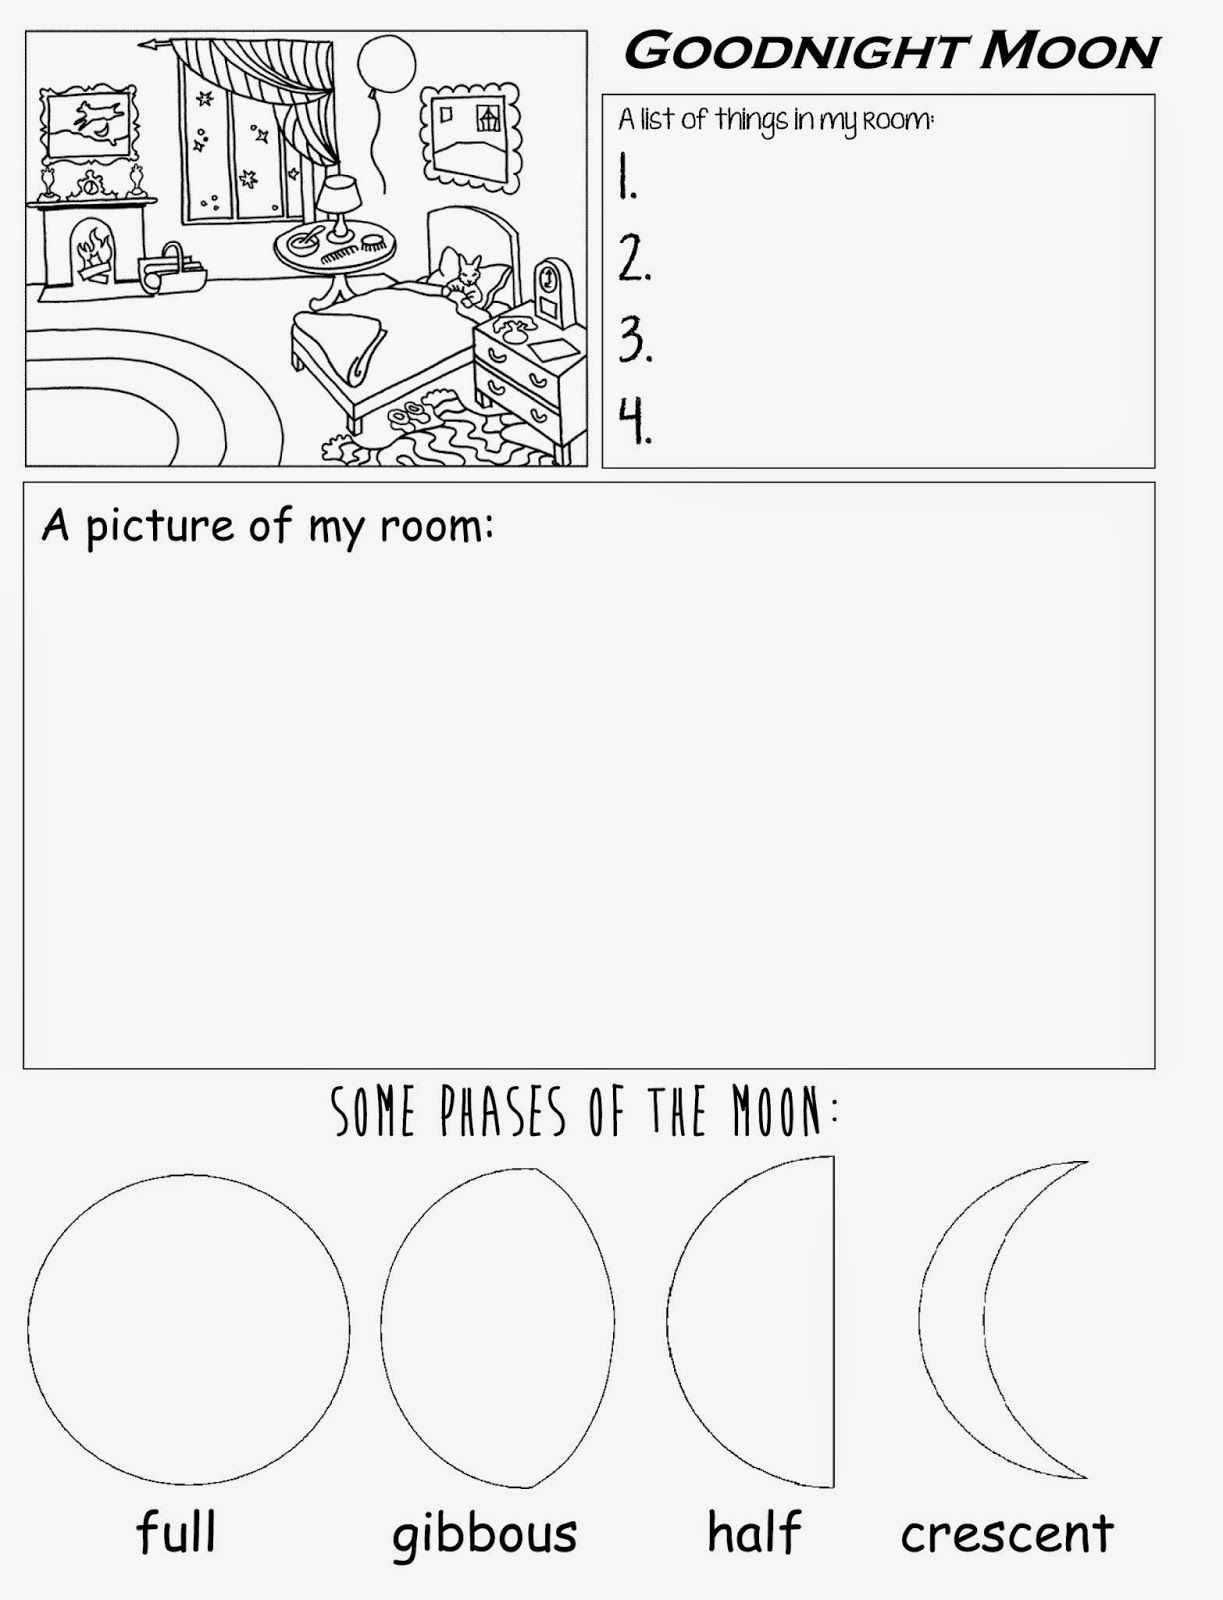 Goodnight Moon Free Printable Worksheet For Preschool Kindergarten | Free Printable Homework Worksheets